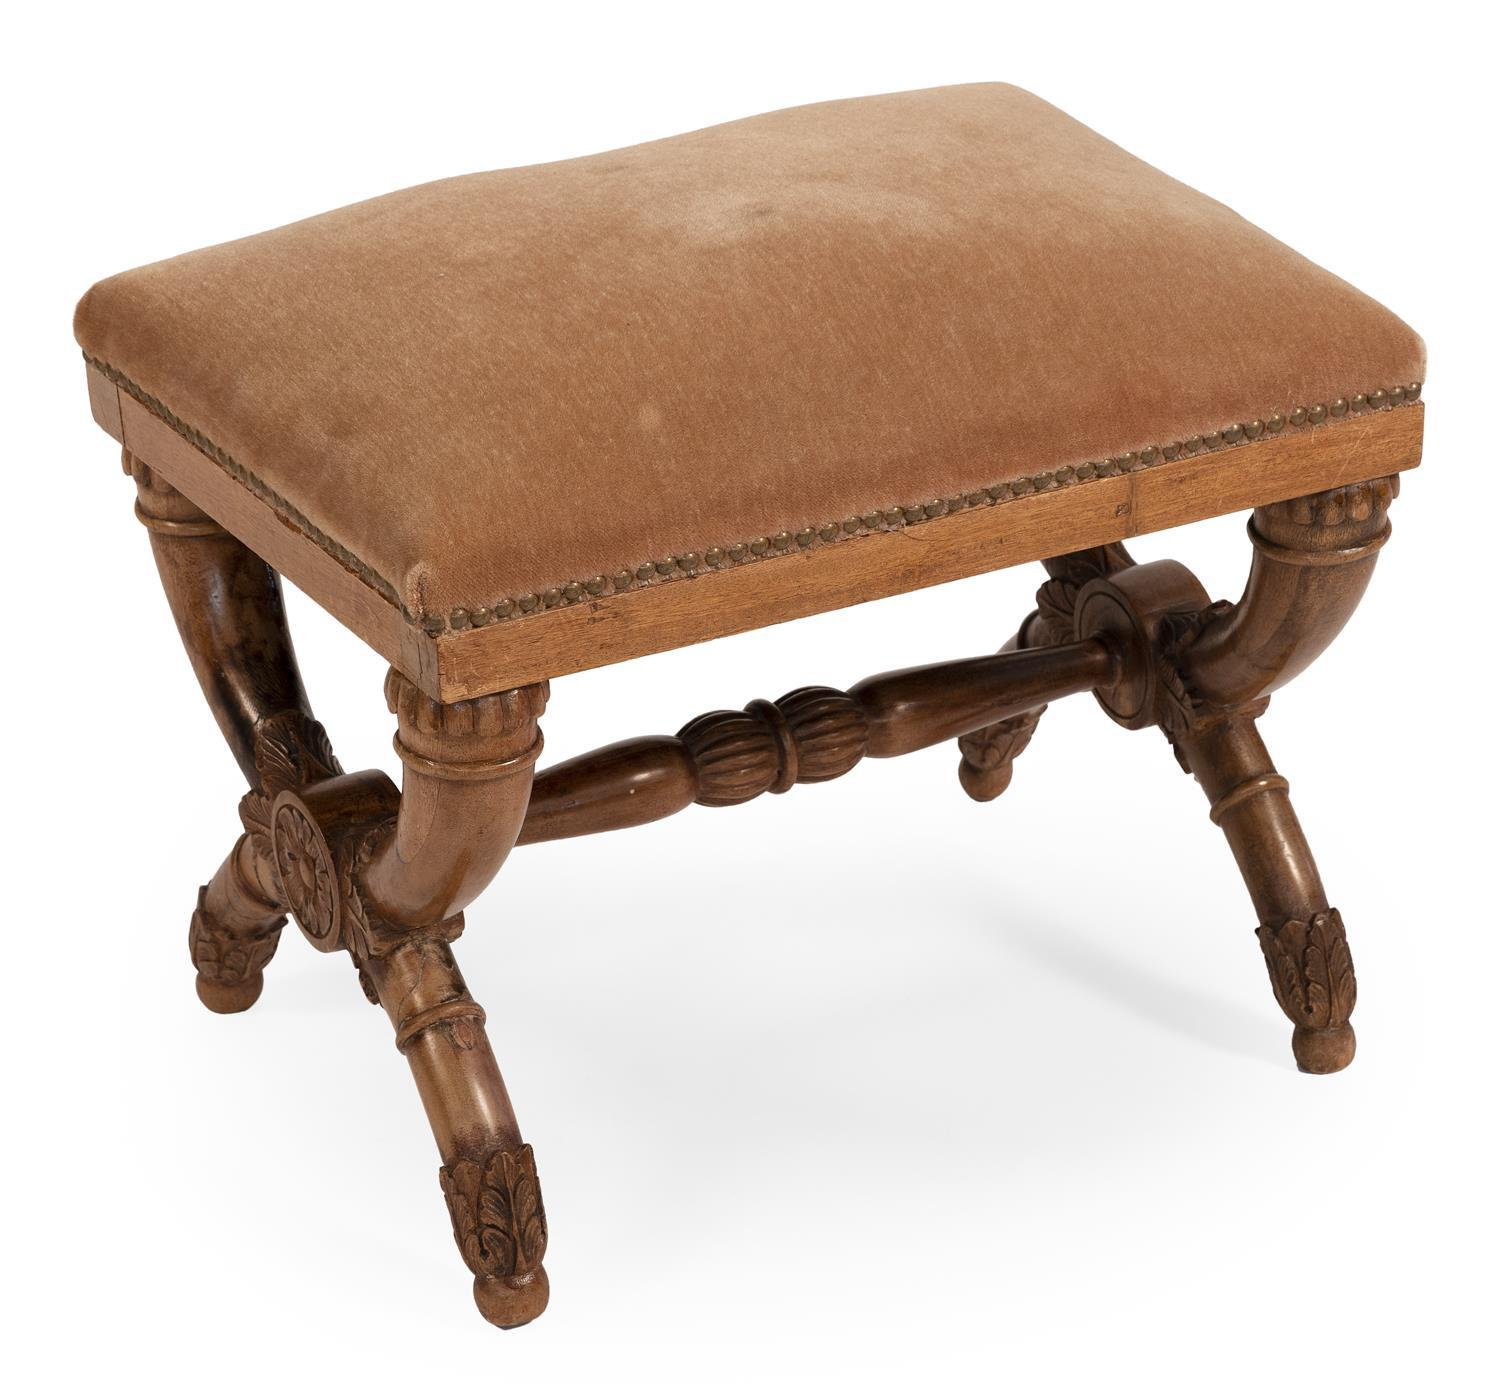 CONTINENTAL FOOTSTOOL In fruitwood. Tan velvet upholstered cushion affixed with brass studs. Acanthus-carved X-form legs joined with...